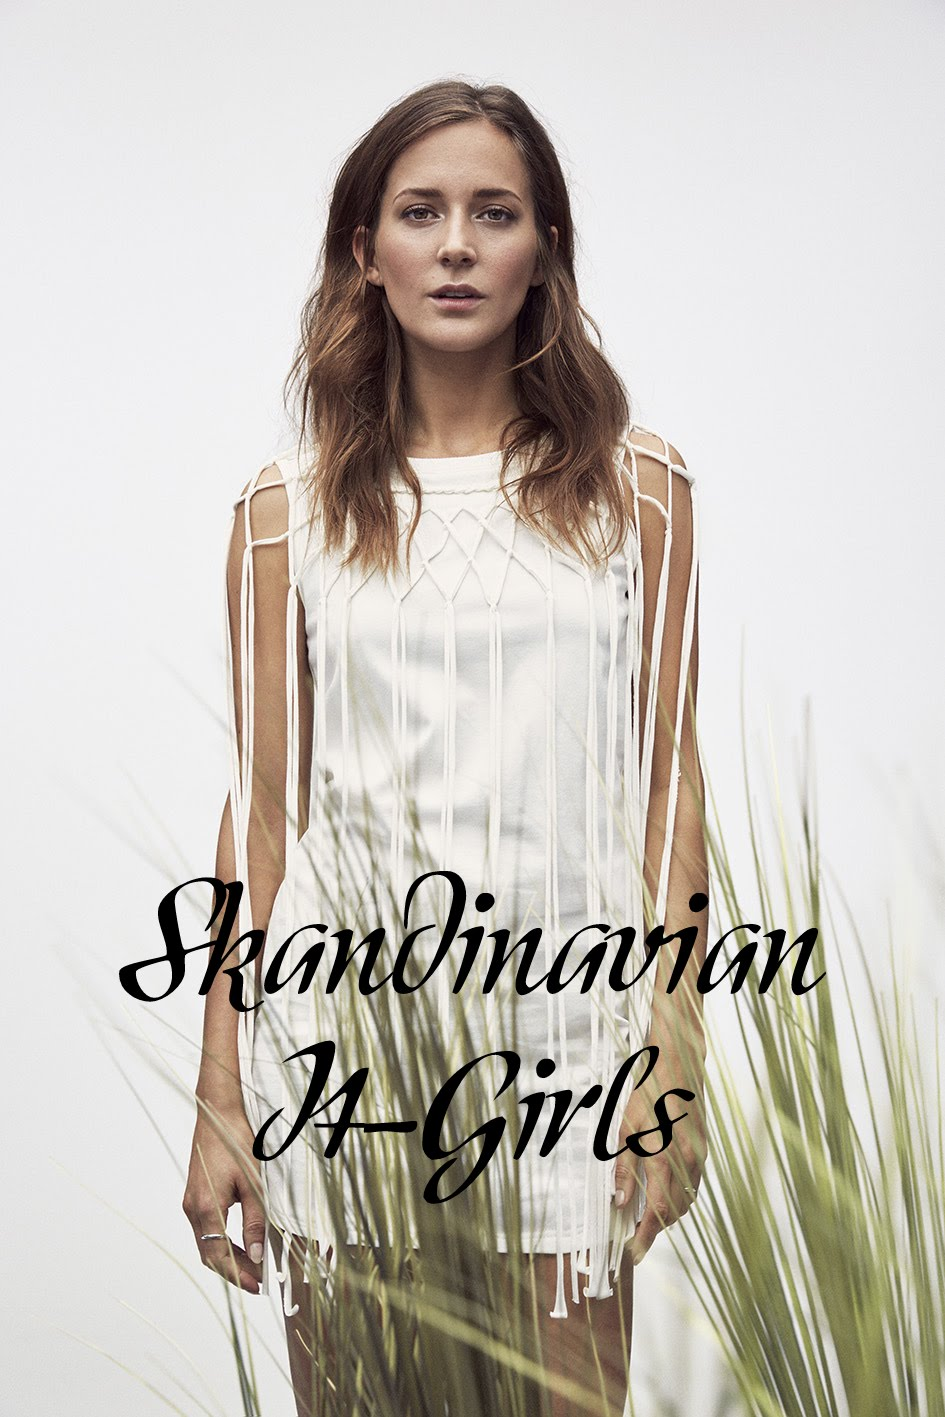 Fashion Inspiration: The Skandinavian It-Girls